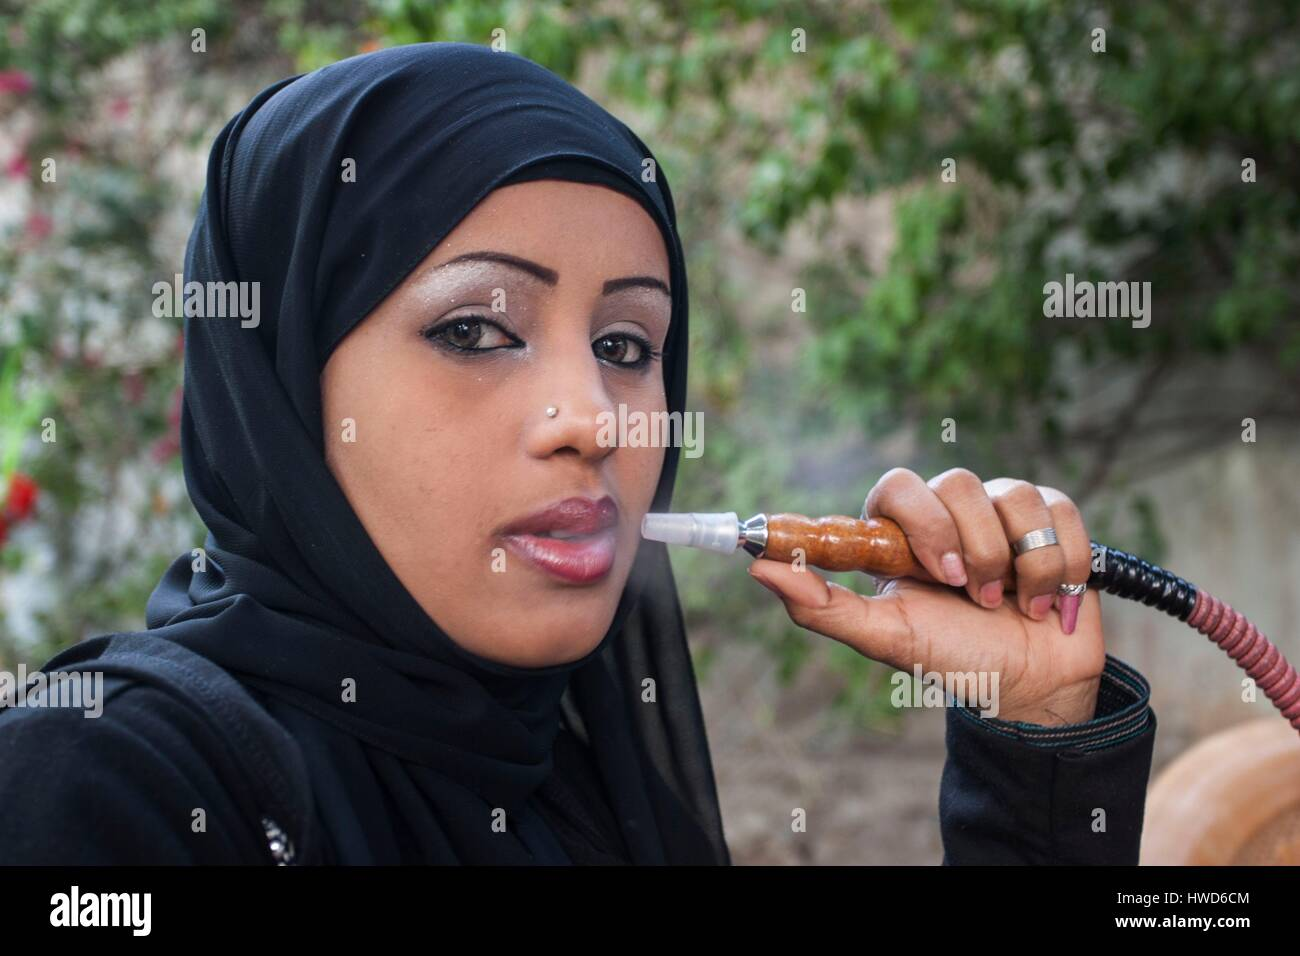 Yemen, Sanaa, lady smoking chicha in the only one coffe shop for women - Stock Image